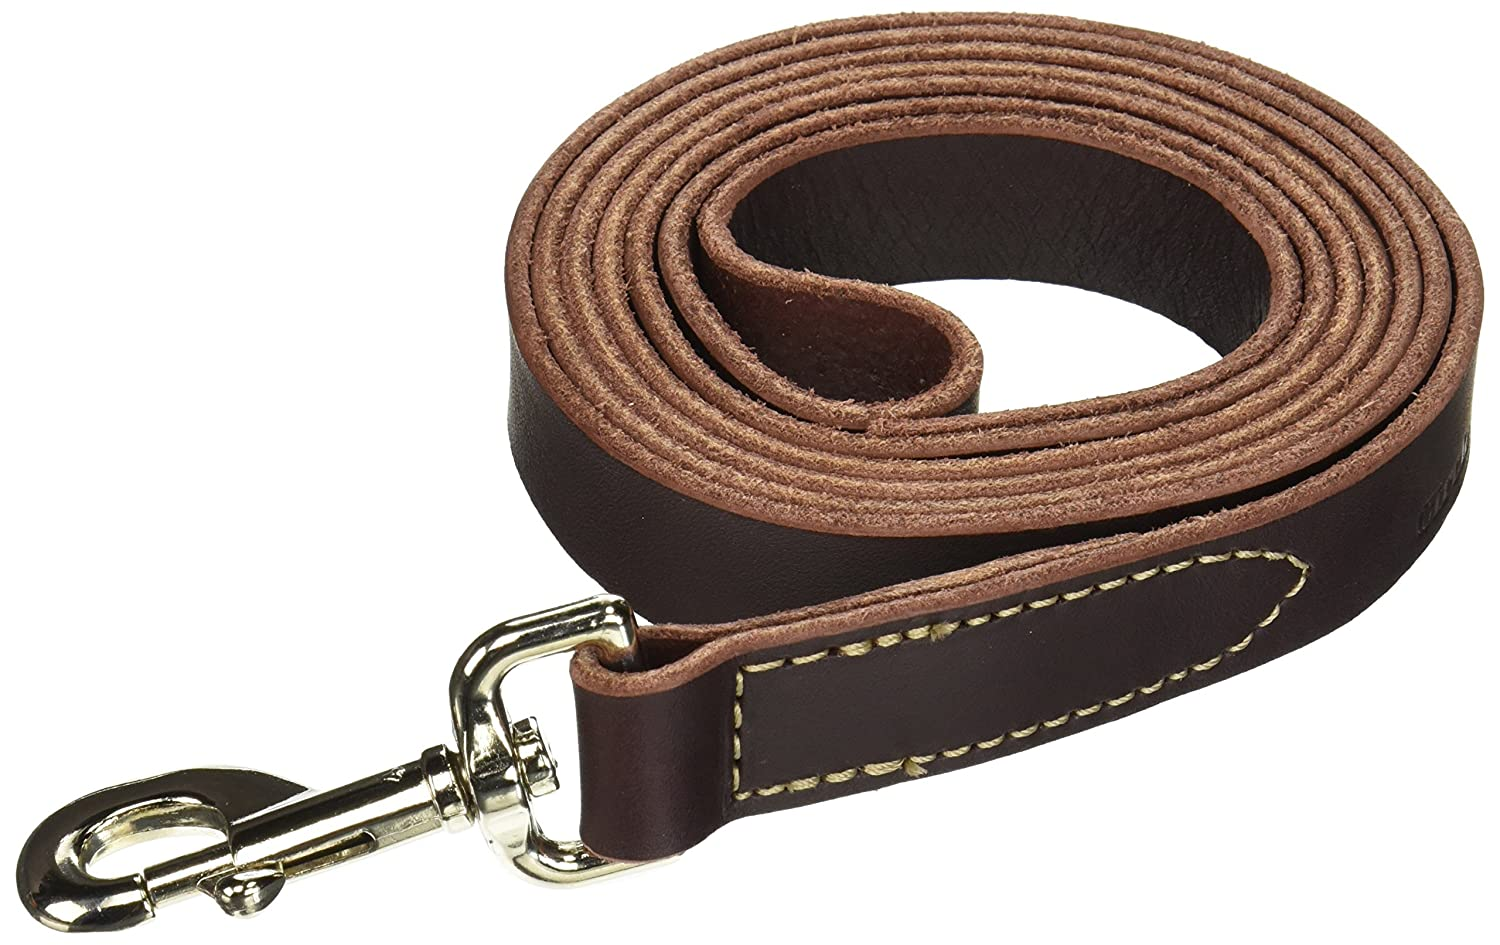 Coastal Pet Products DCP2068 1-Inch by 6-Feet Leather Circle T Latigo Dog Leash with Nickel Plated Snaps